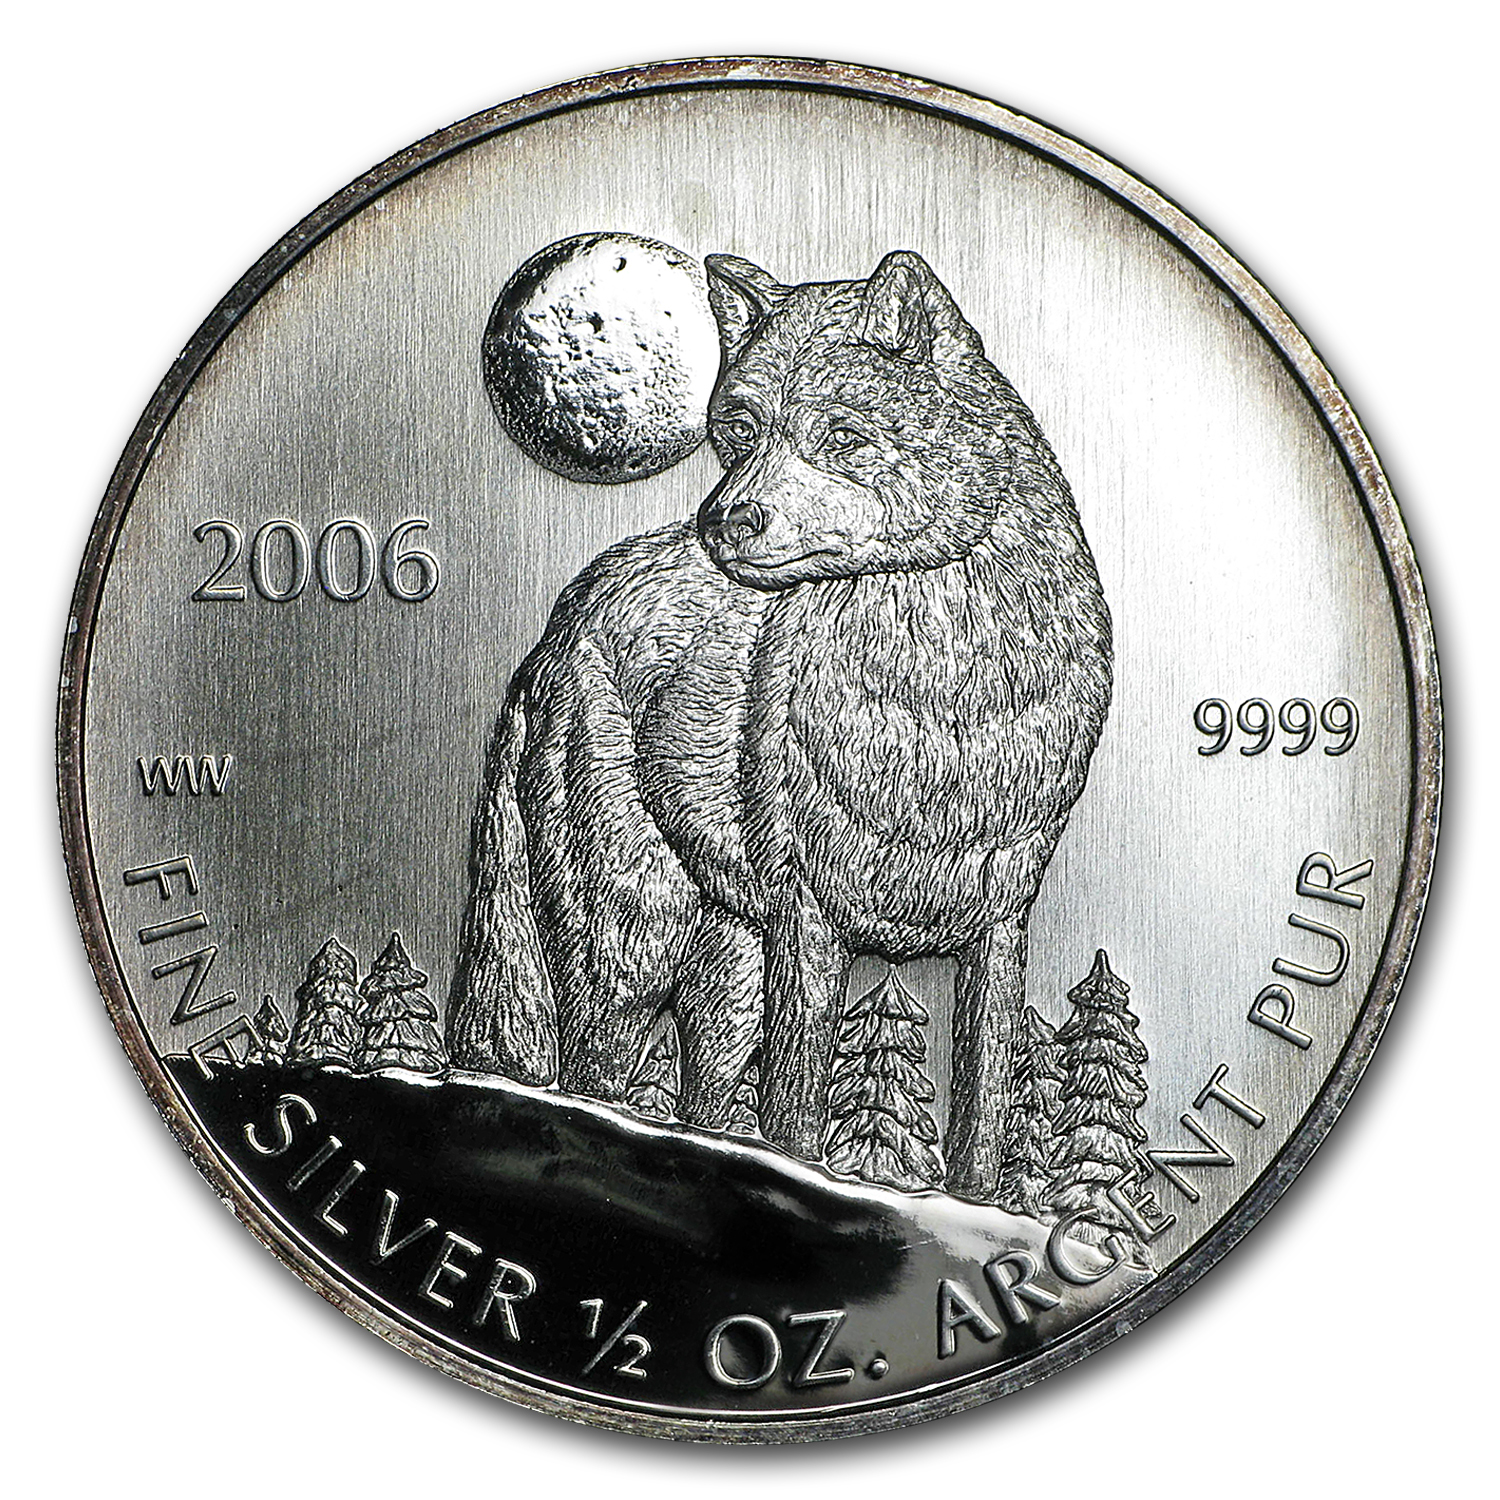 2006 1/2 oz Silver Canadian Timber Wolf Coin (Abrasions/Spotted)